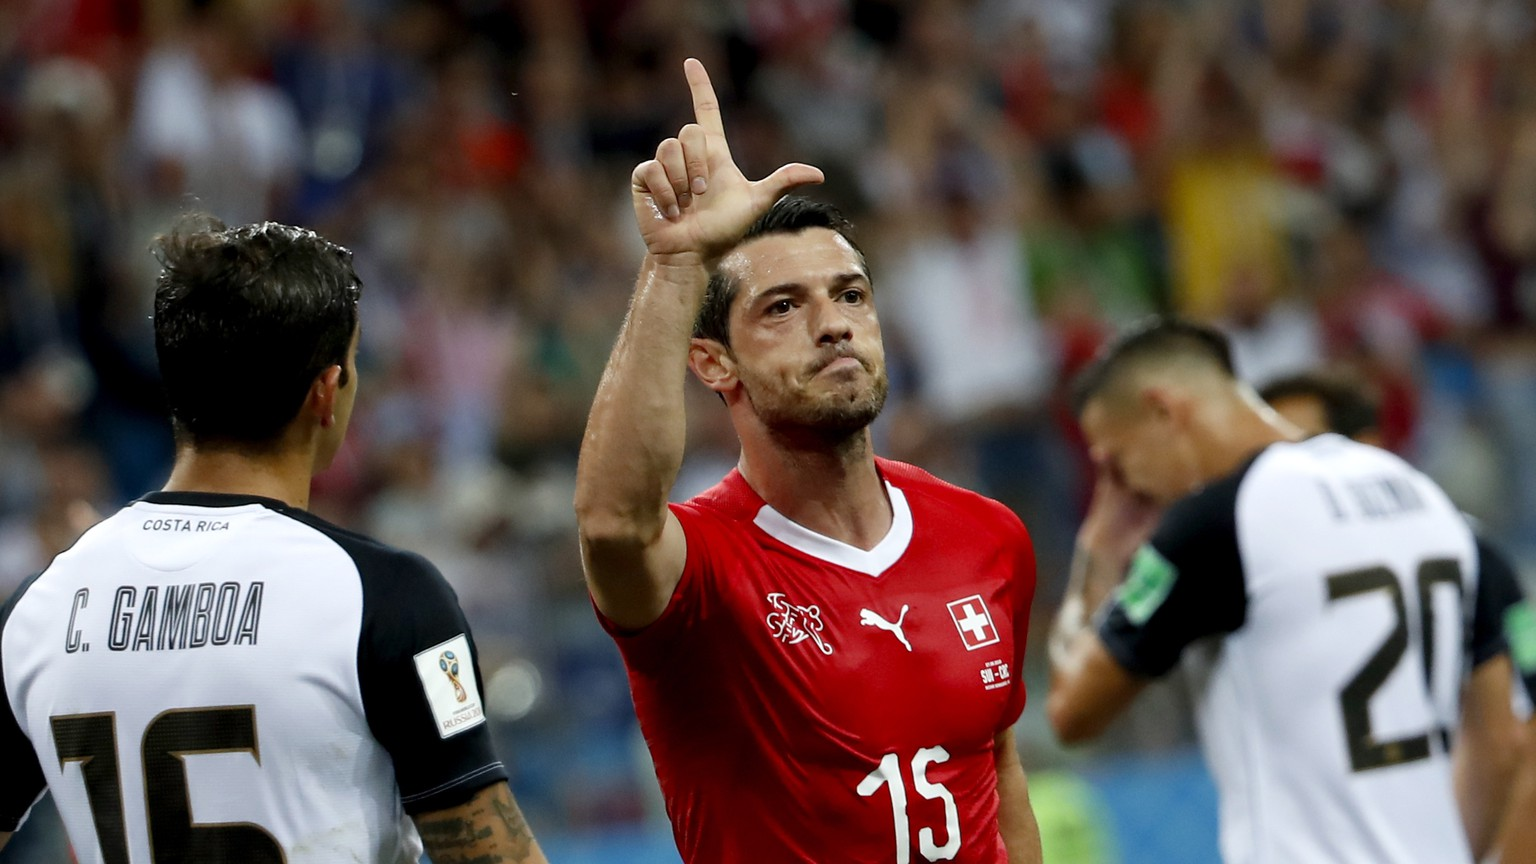 epa06845432 Blerim Dzemaili (C) of Switzerland celebrates scoring the opening goal during the FIFA World Cup 2018 group E preliminary round soccer match between Switzerland and Costa Rica in Nizhny Novgorod, Russia, 27 June 2018.